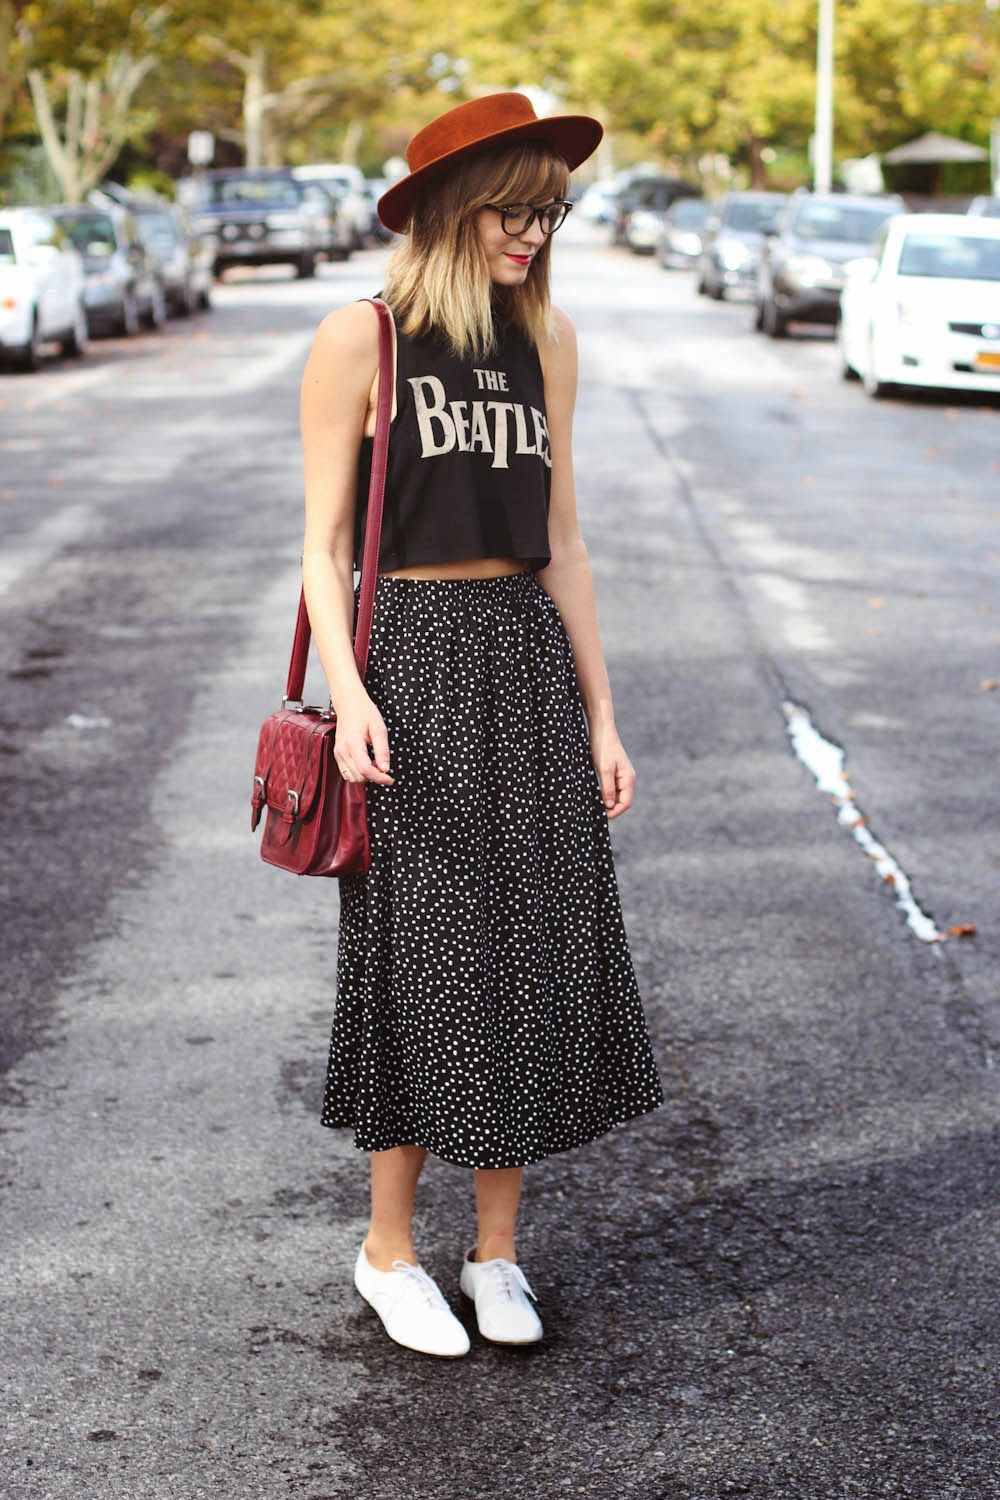 Hipster Frauen Mode Abbey Road Faker Hipster Mode Vintage Mode Und Outfit